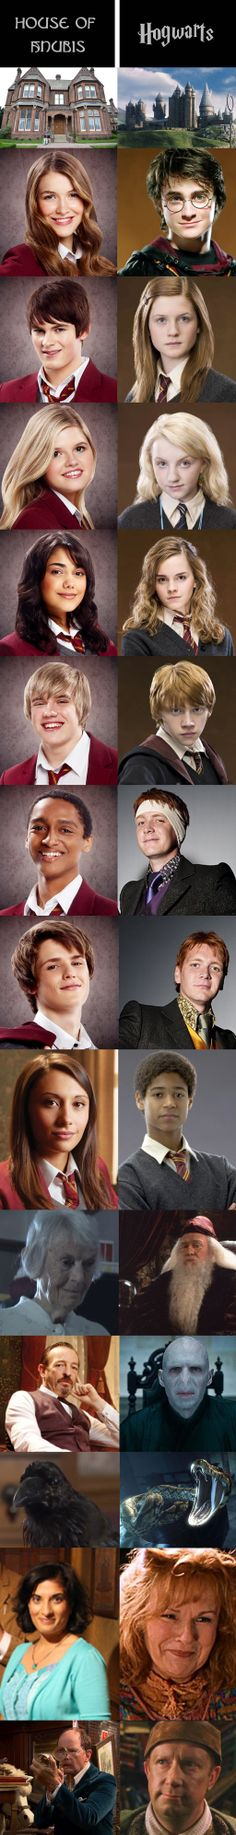 House of Anubis vs. Hogwarts by fruitloopcreamsoda.deviantart.com on @deviantART